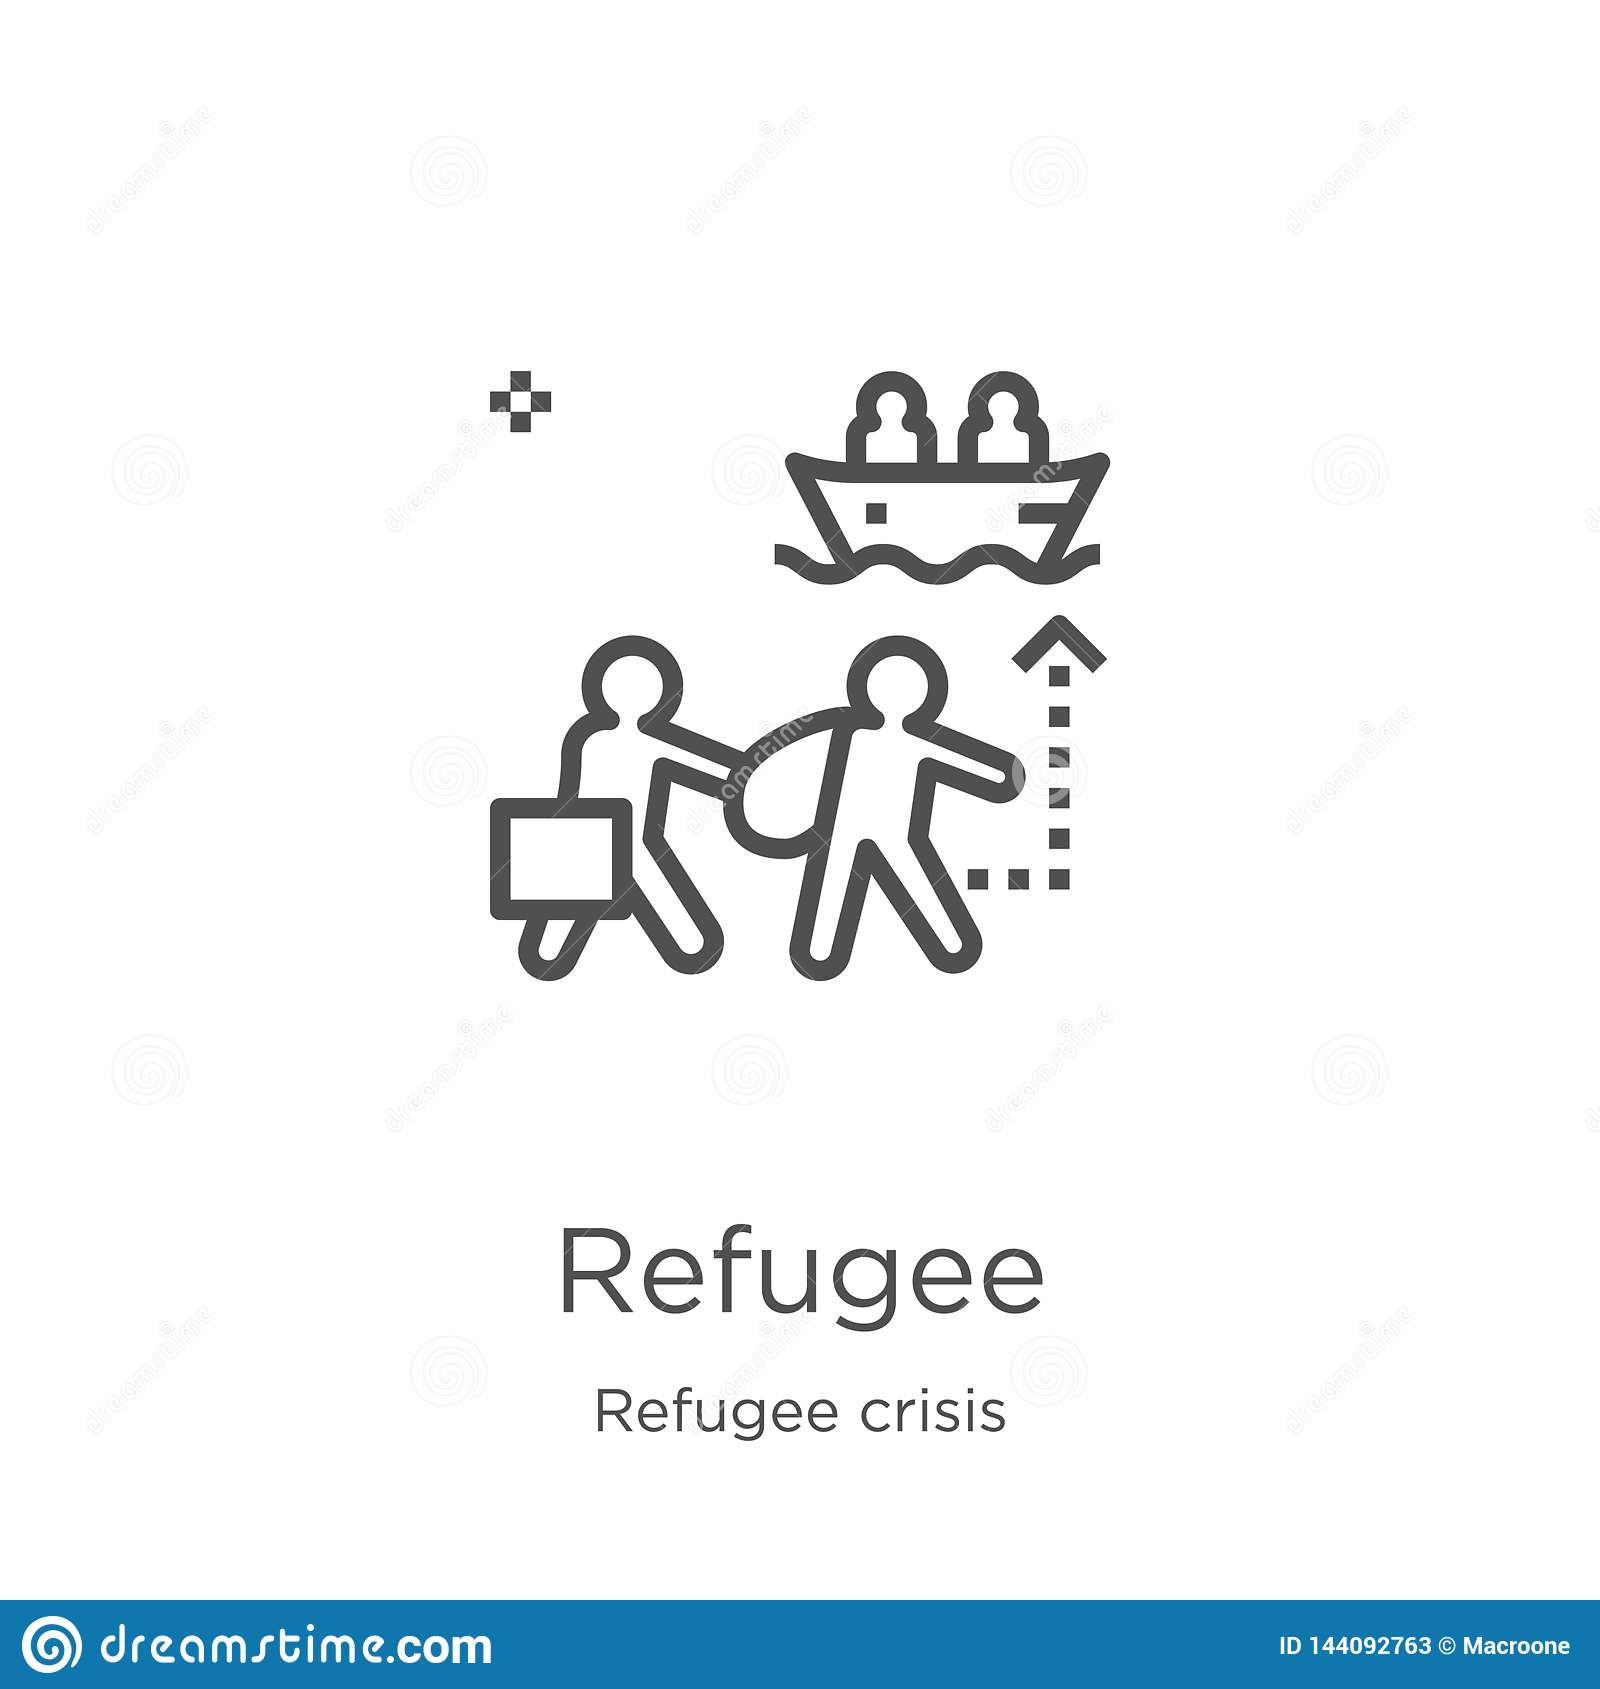 refugee icon vector from refugee crisis collection. Thin line refugee outline icon vector illustration. Outline, thin line refugee